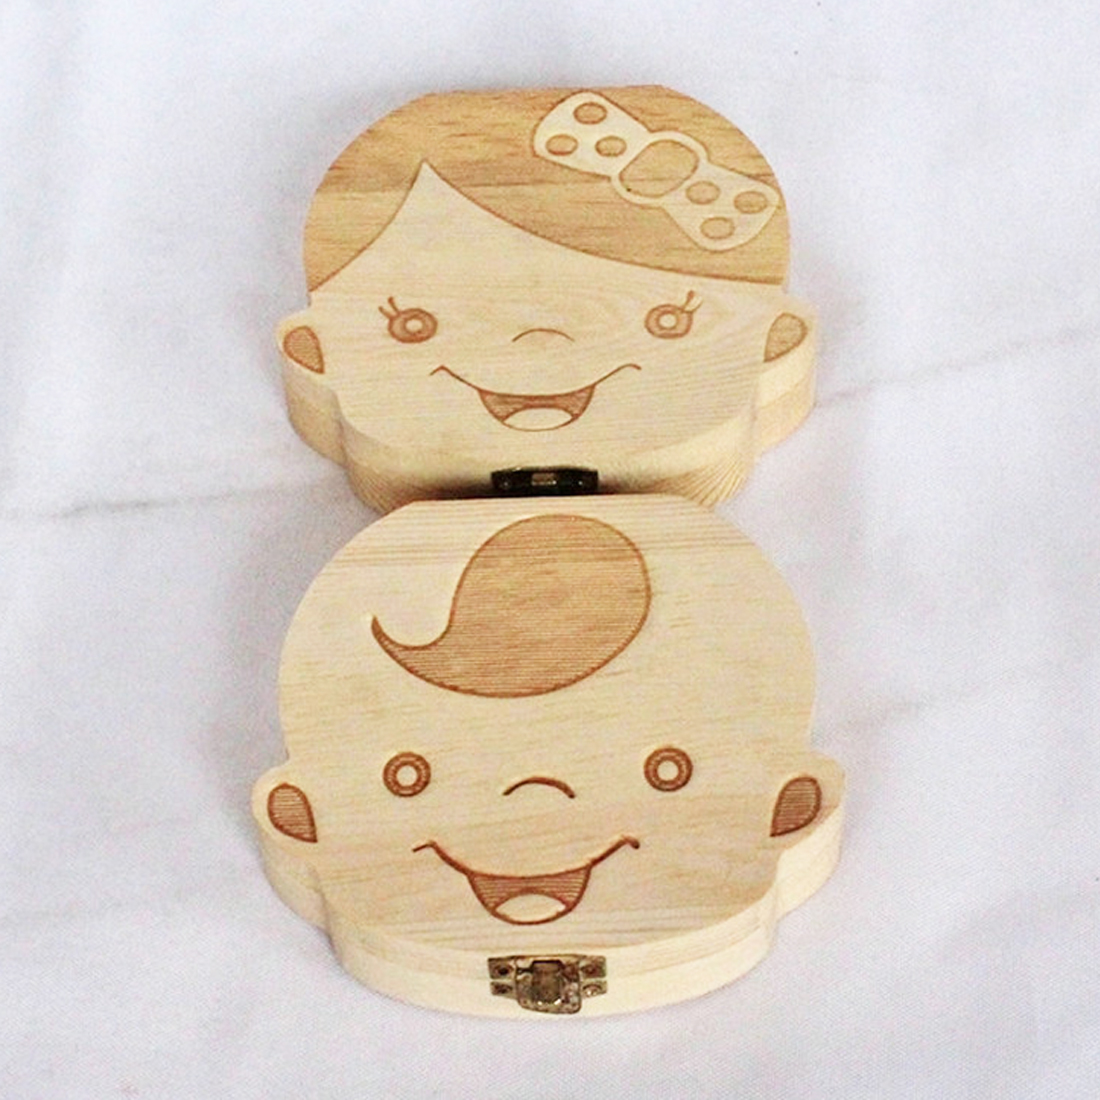 Organizer Milk Tooth Storage Box For Boy Girl Save Teeth Umbilical Cord New English Wooden Baby Tooth Box Love